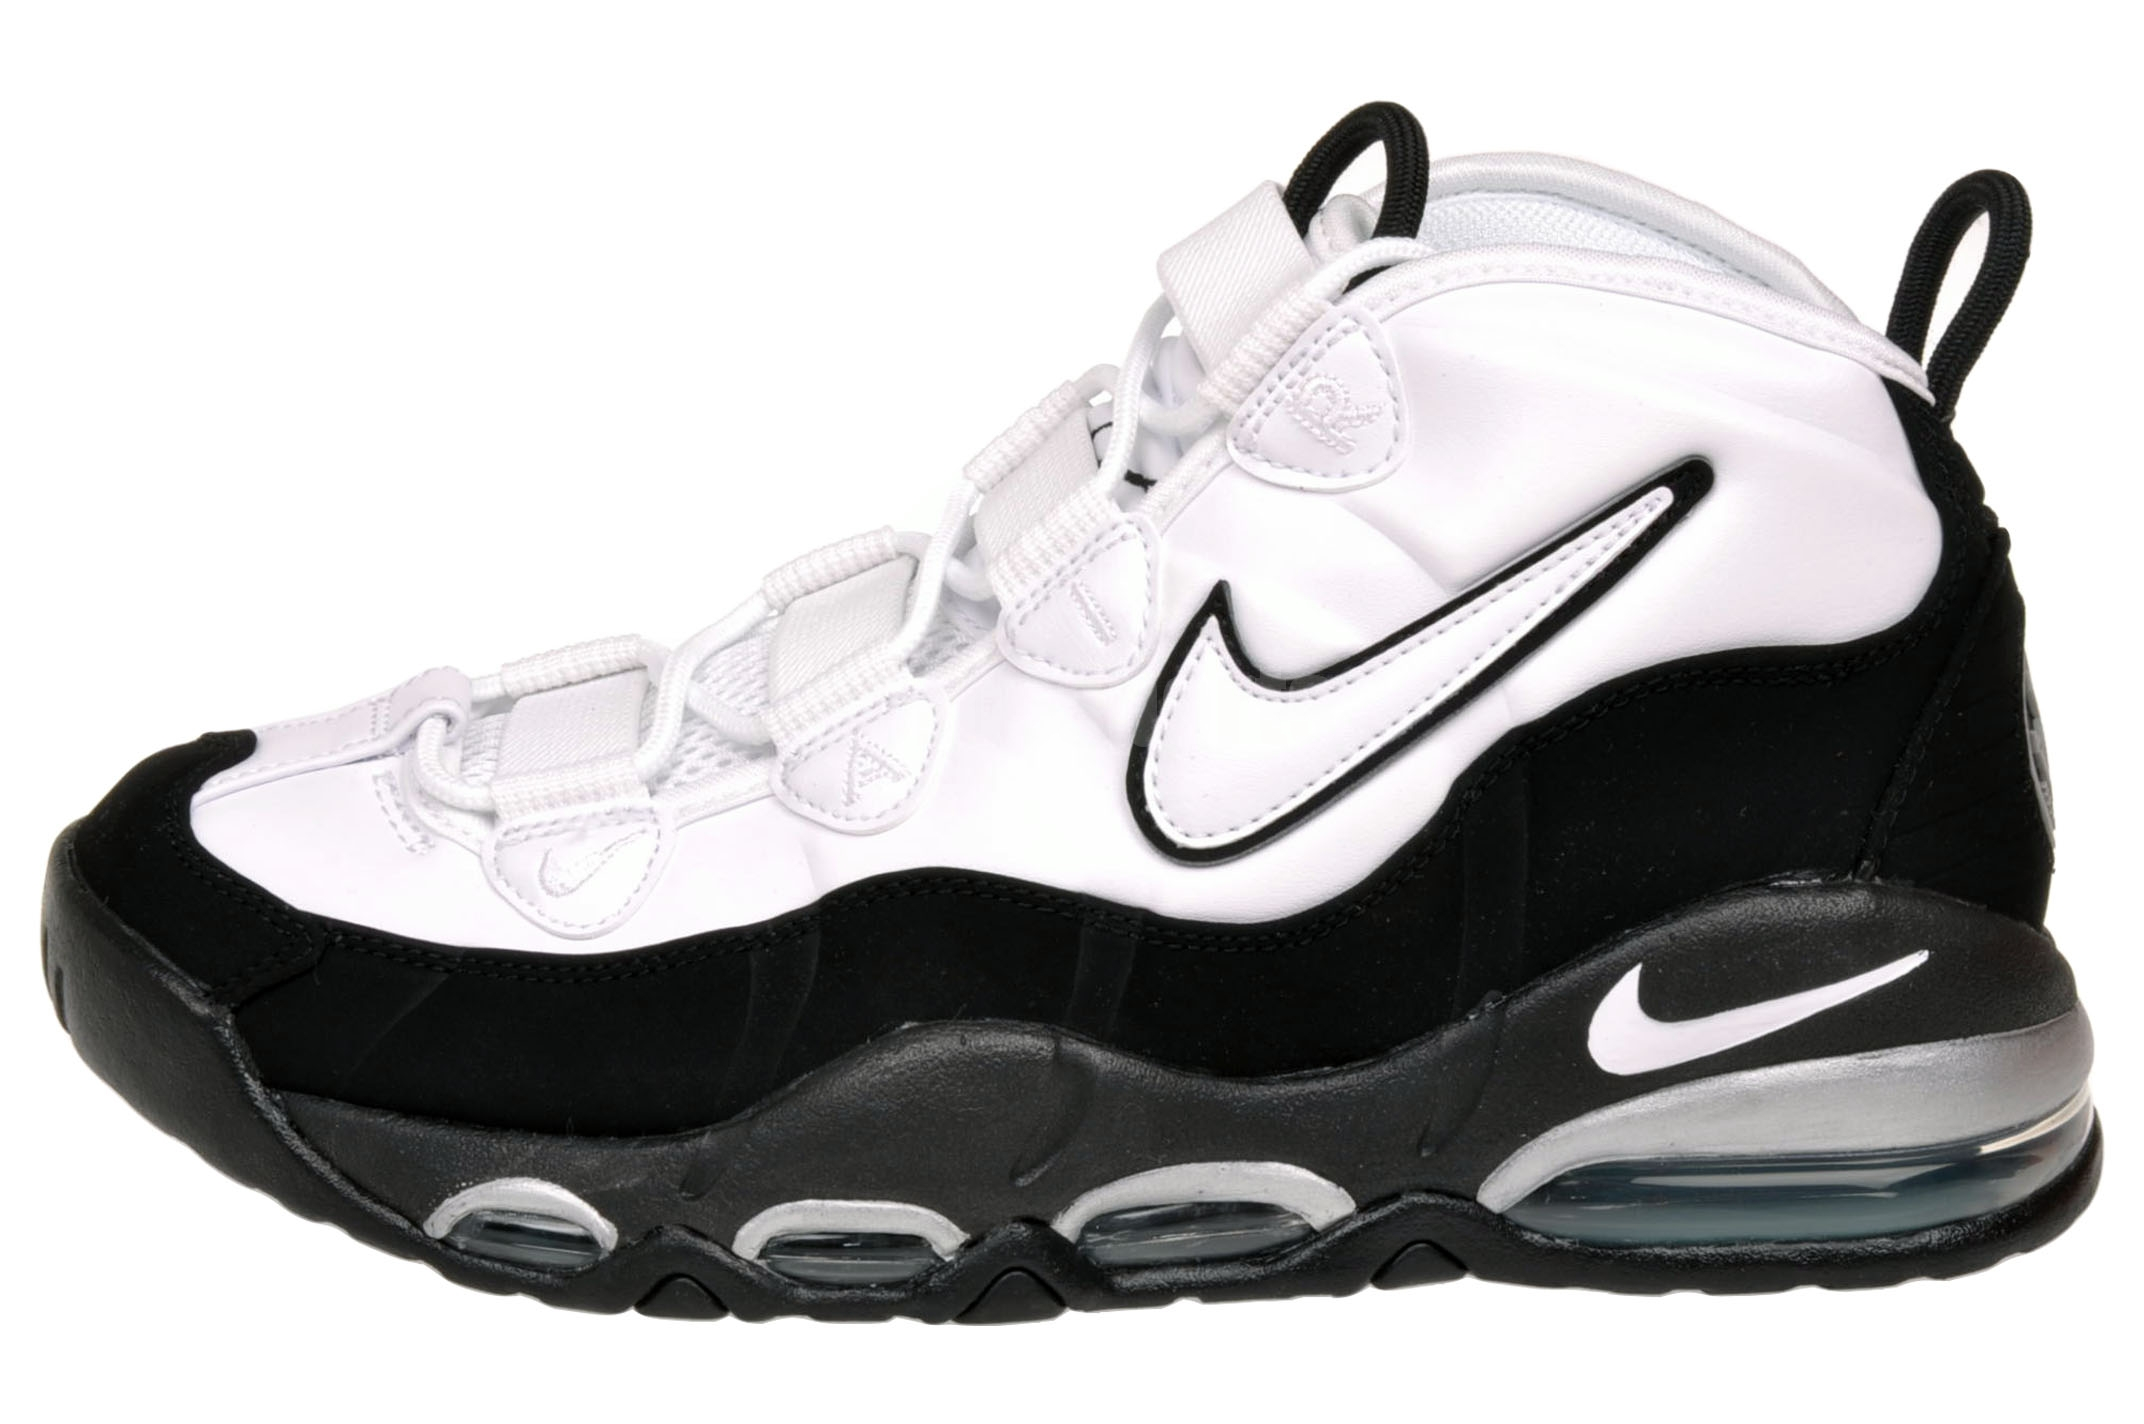 Air max shoes for sale ShareMedoc